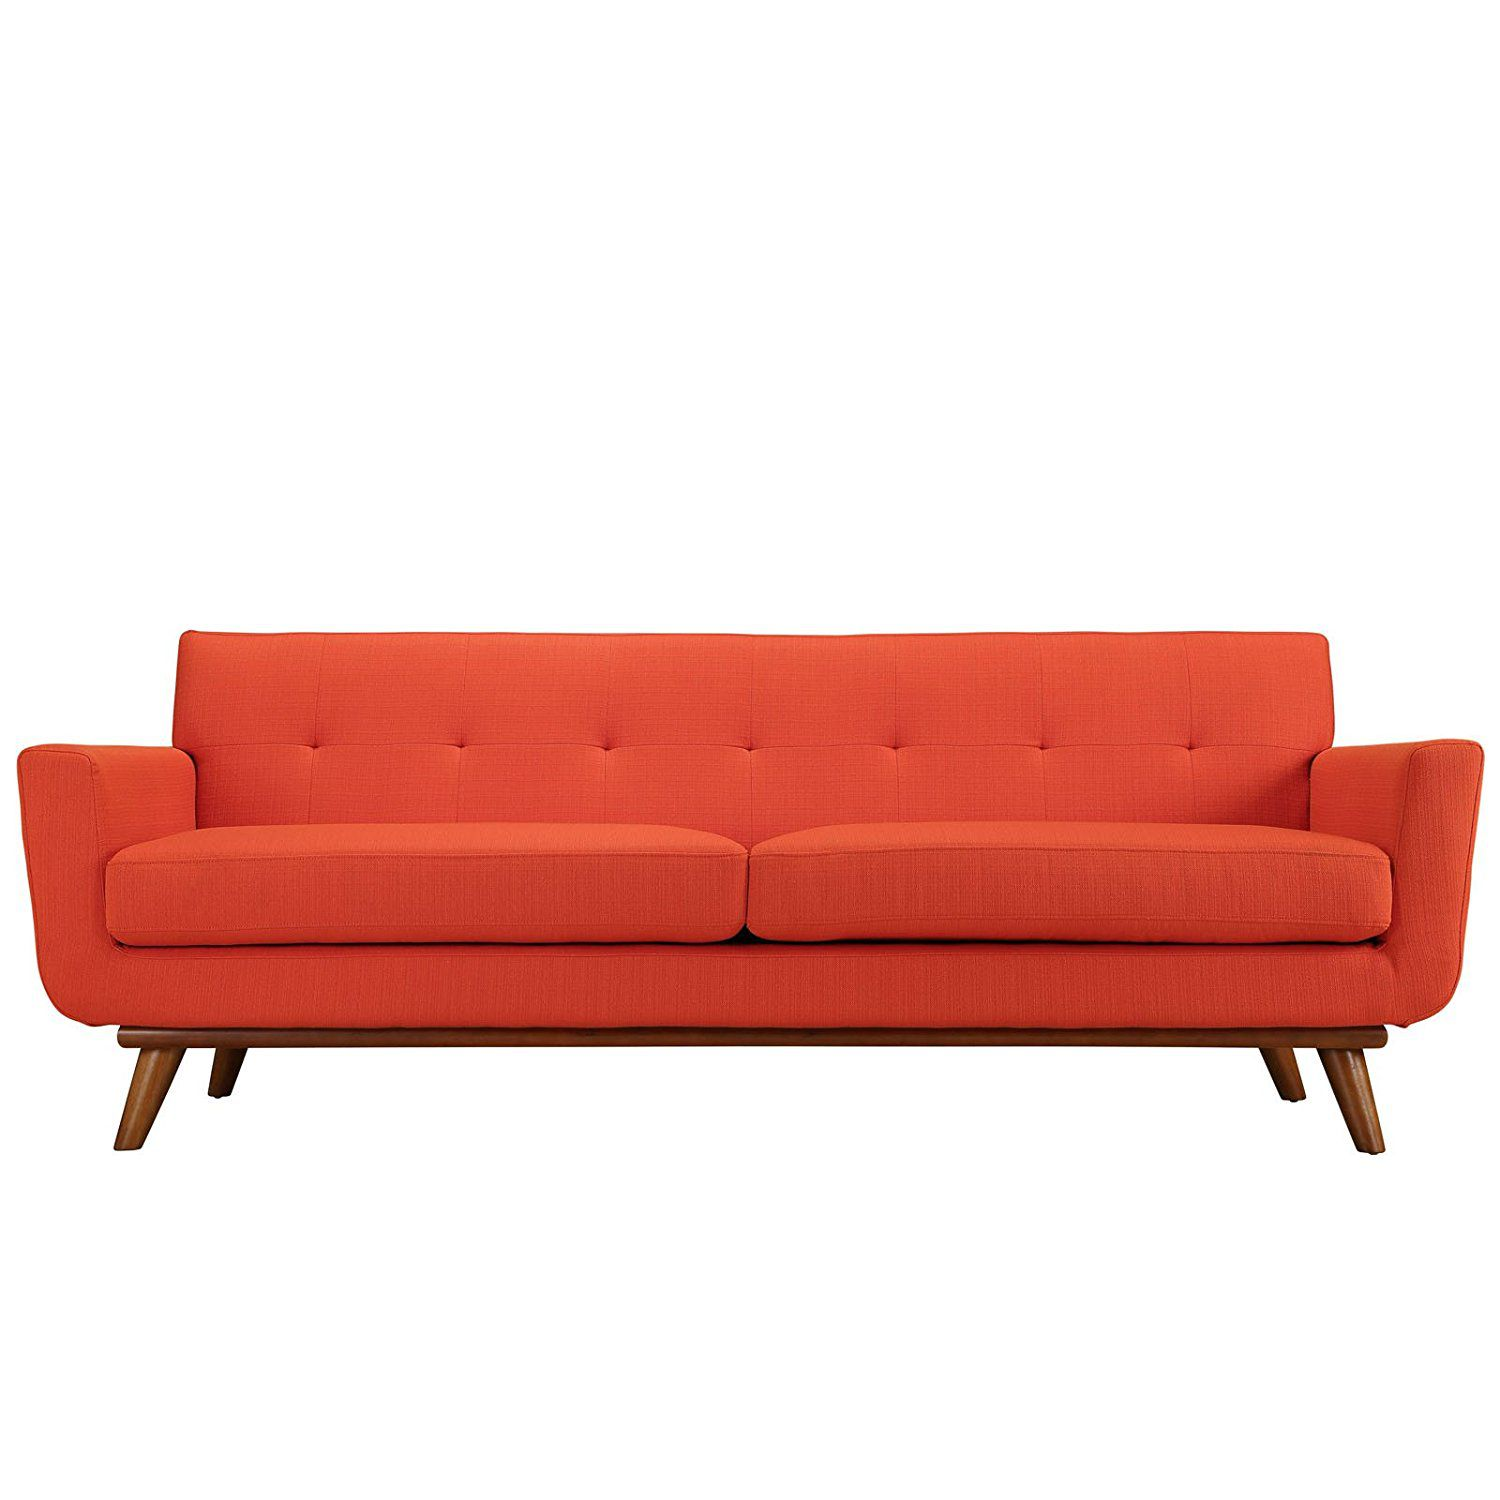 The 7 Best Sectional Sofas to Buy in 2017